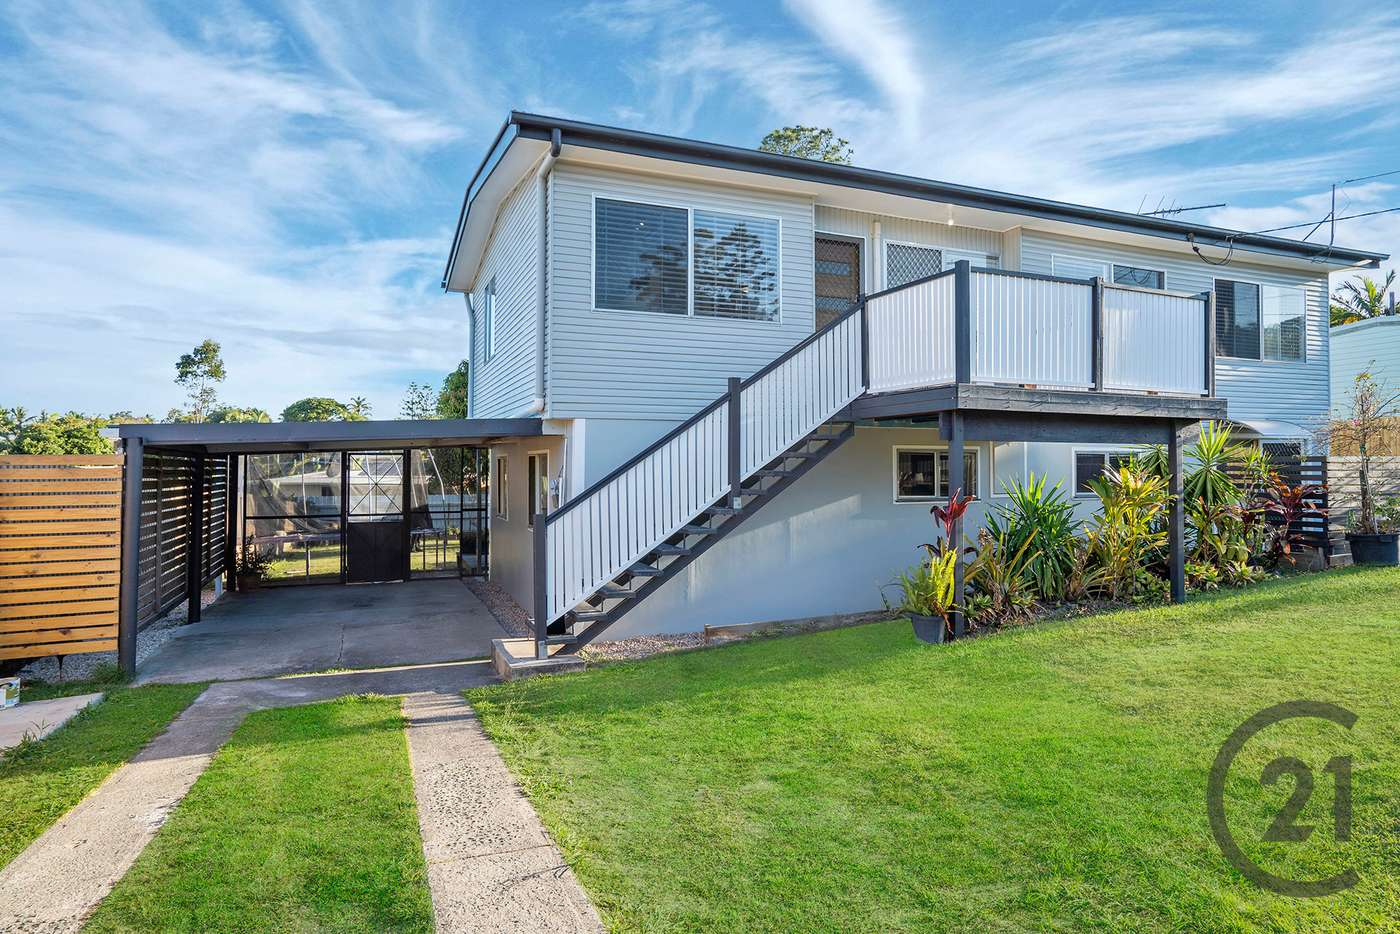 Main view of Homely house listing, 11 Bruce Road, Woodridge QLD 4114